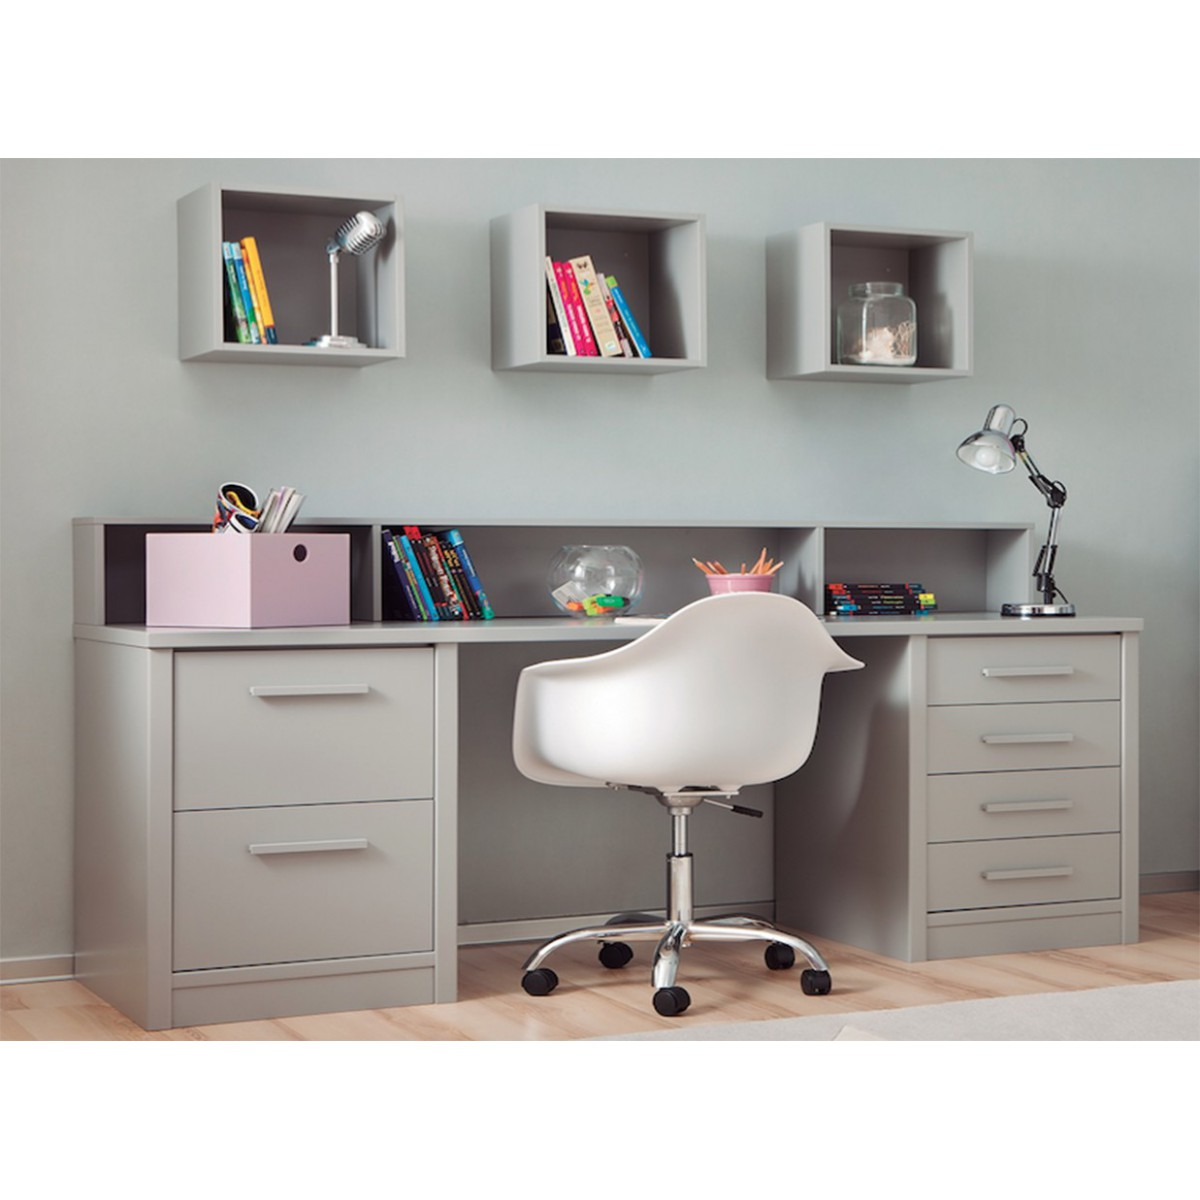 Bureau junior moderne et fonctionnel sign asoral for Bureau moderne ado